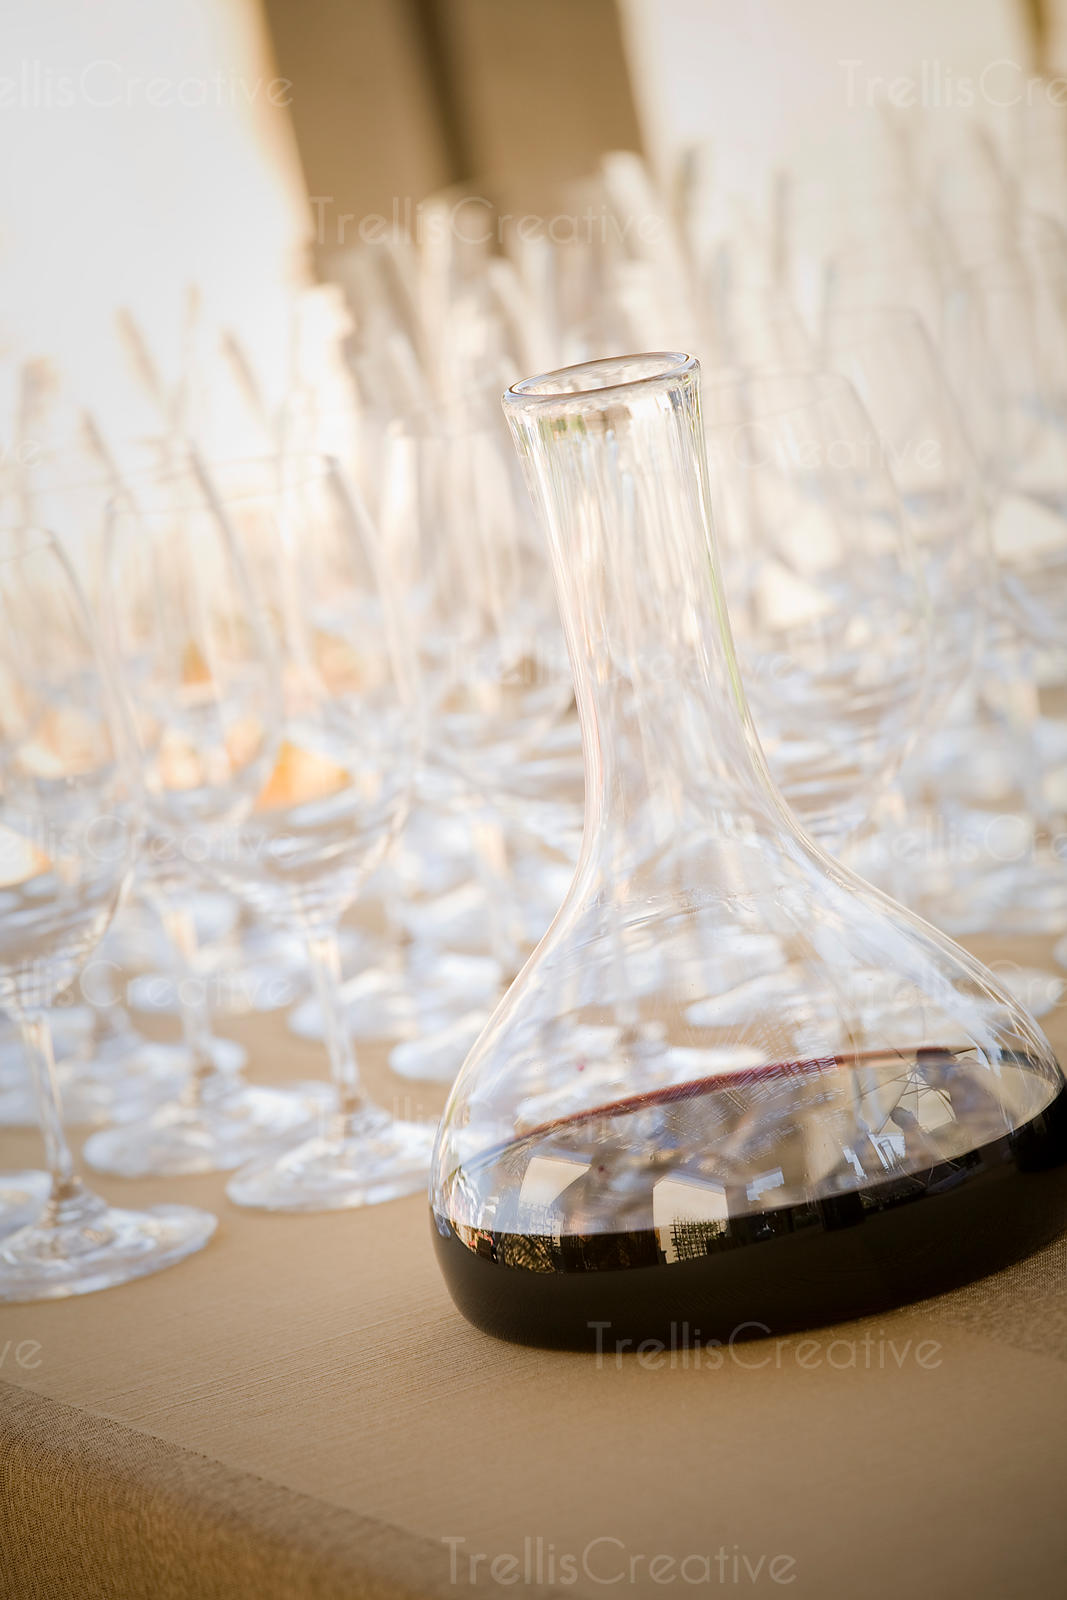 A filled decanter of red wine waiting to be poured